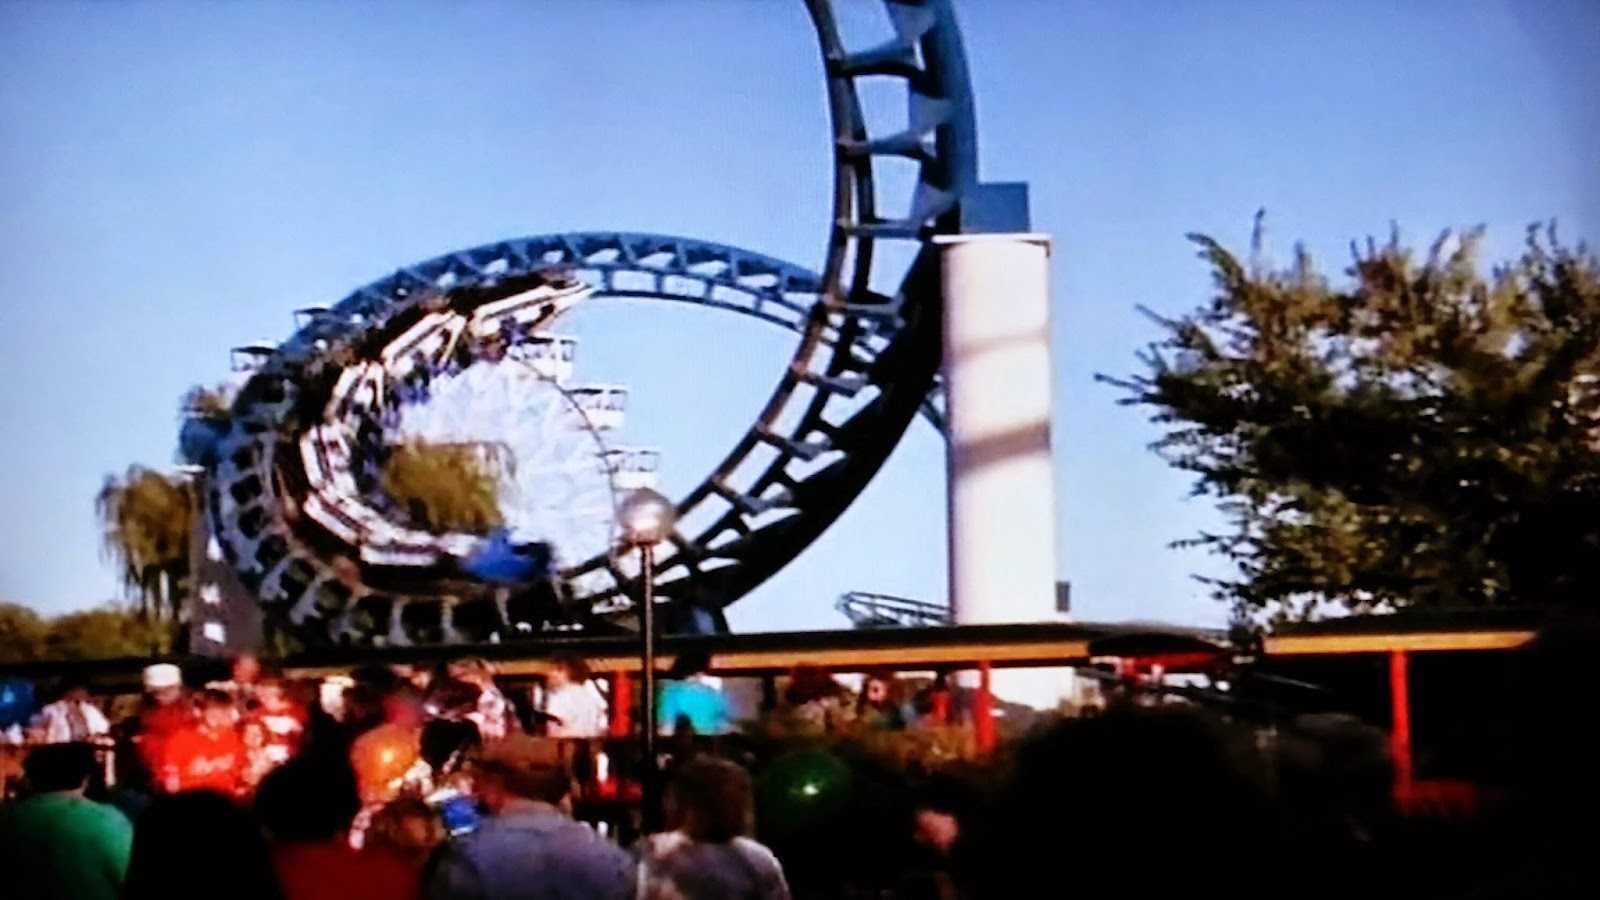 Valleyfair amusement park in shakopee minnesota was used as a filming